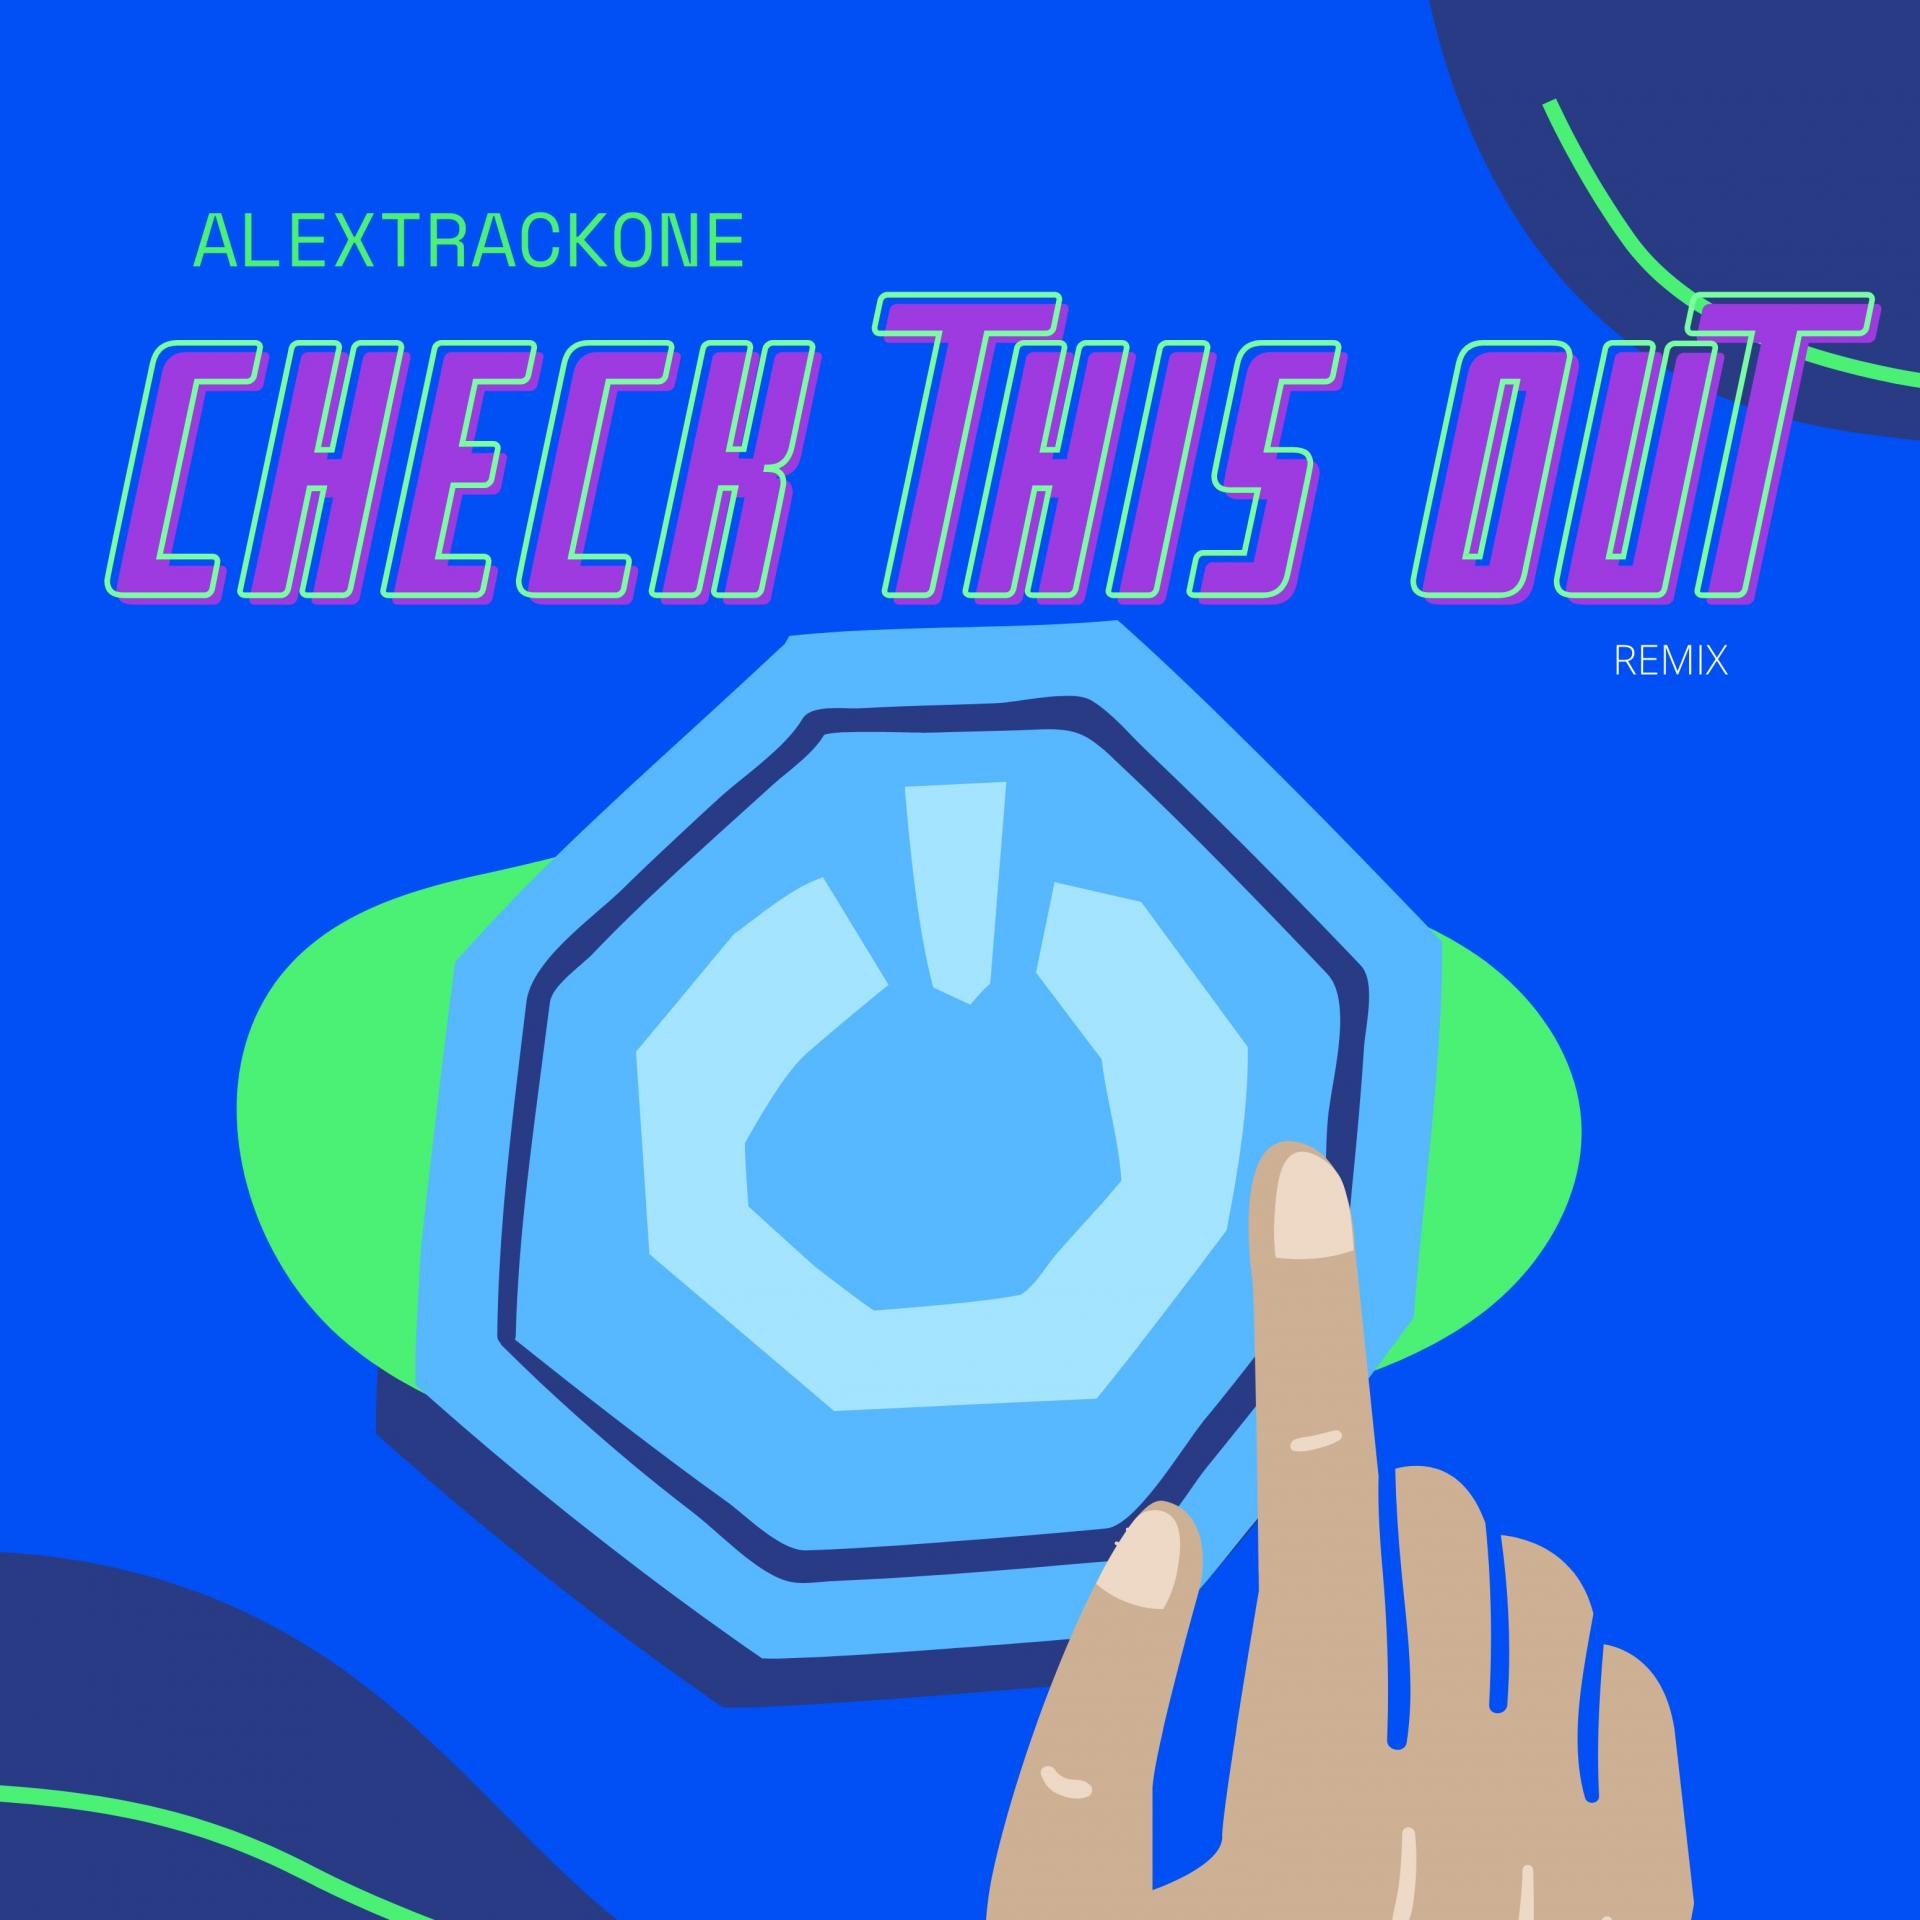 CHECK THIS OUT -REMIX-